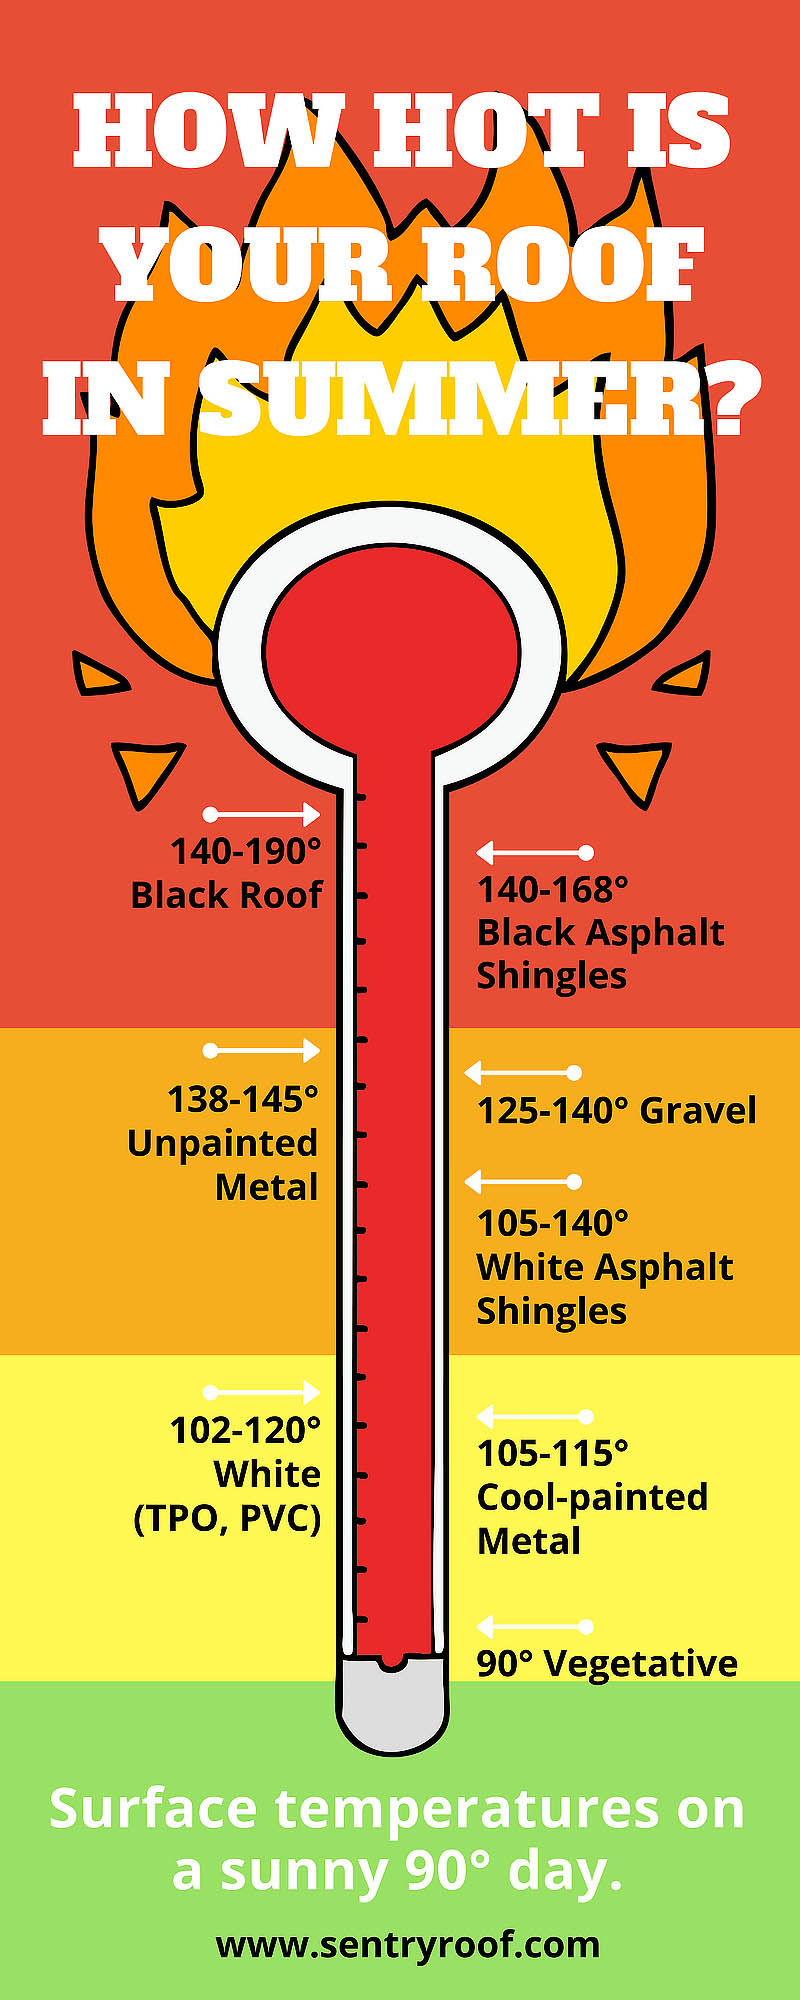 infographic-roof-surface-temps2.jpg